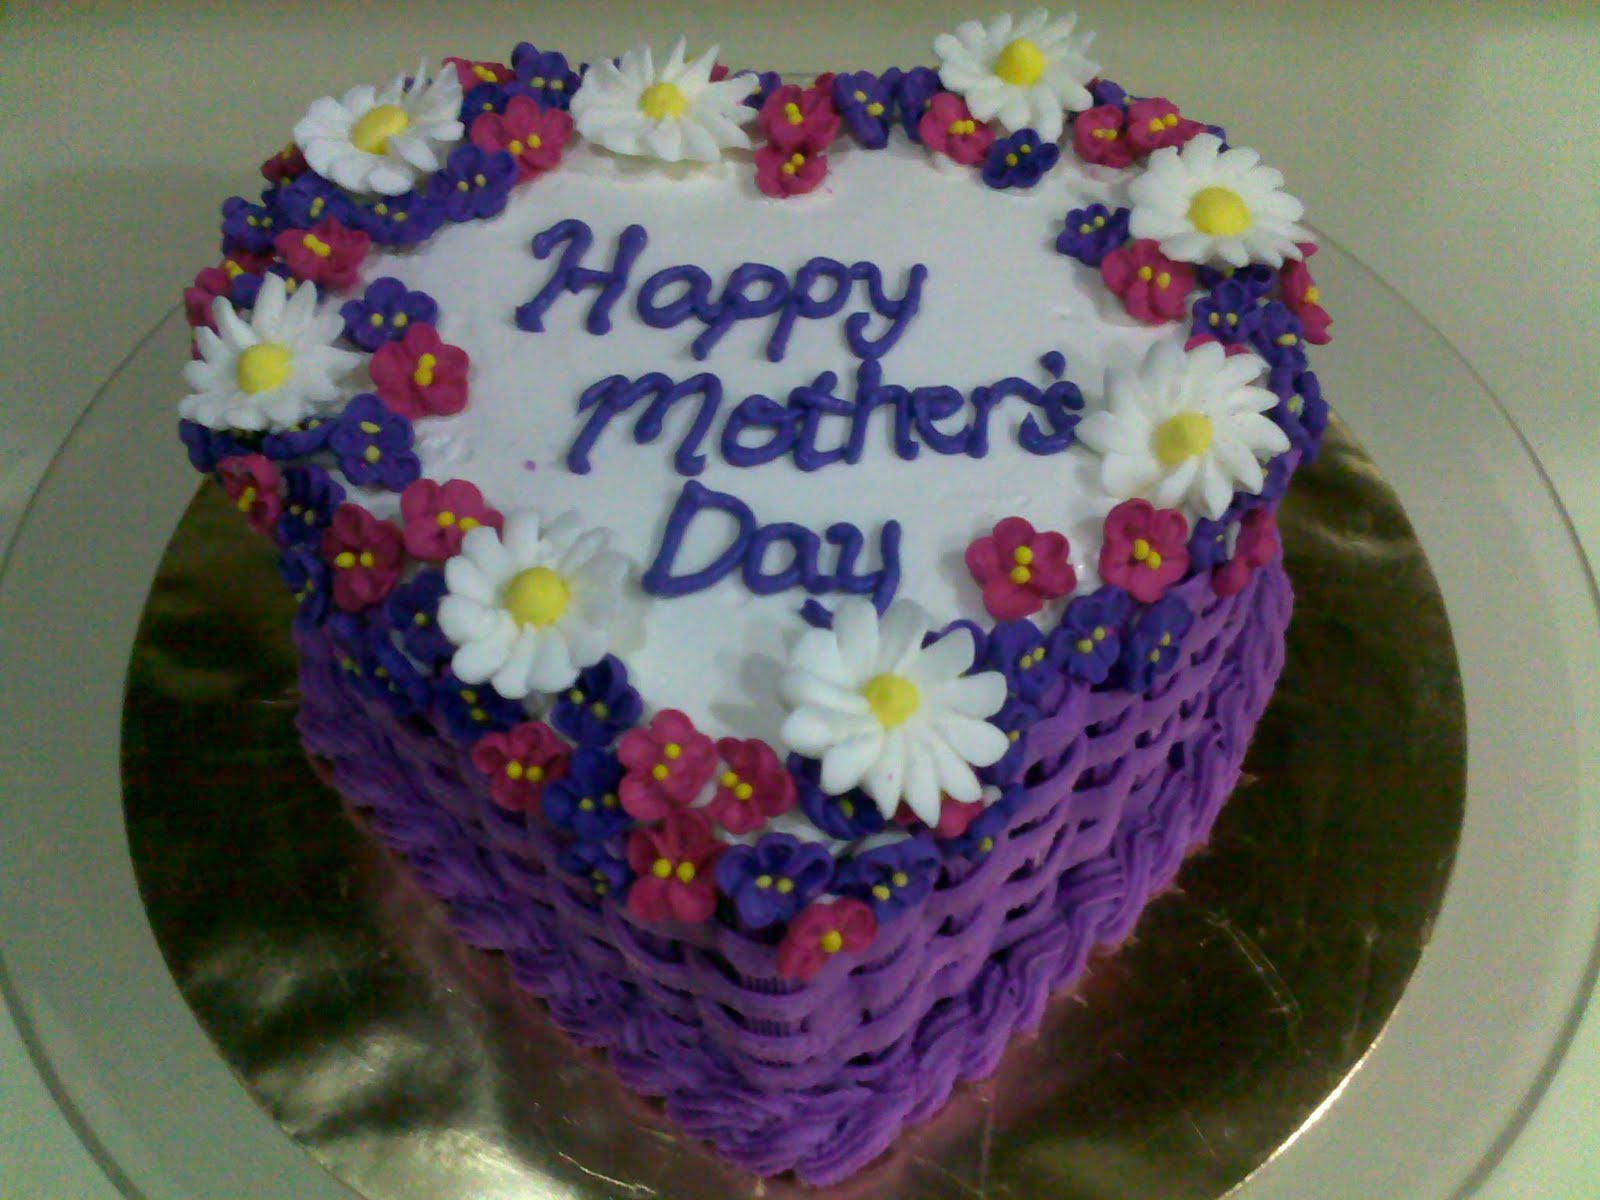 Cake Design For Mother : Delightful Mother s Day Cake Ideas jareceqyk